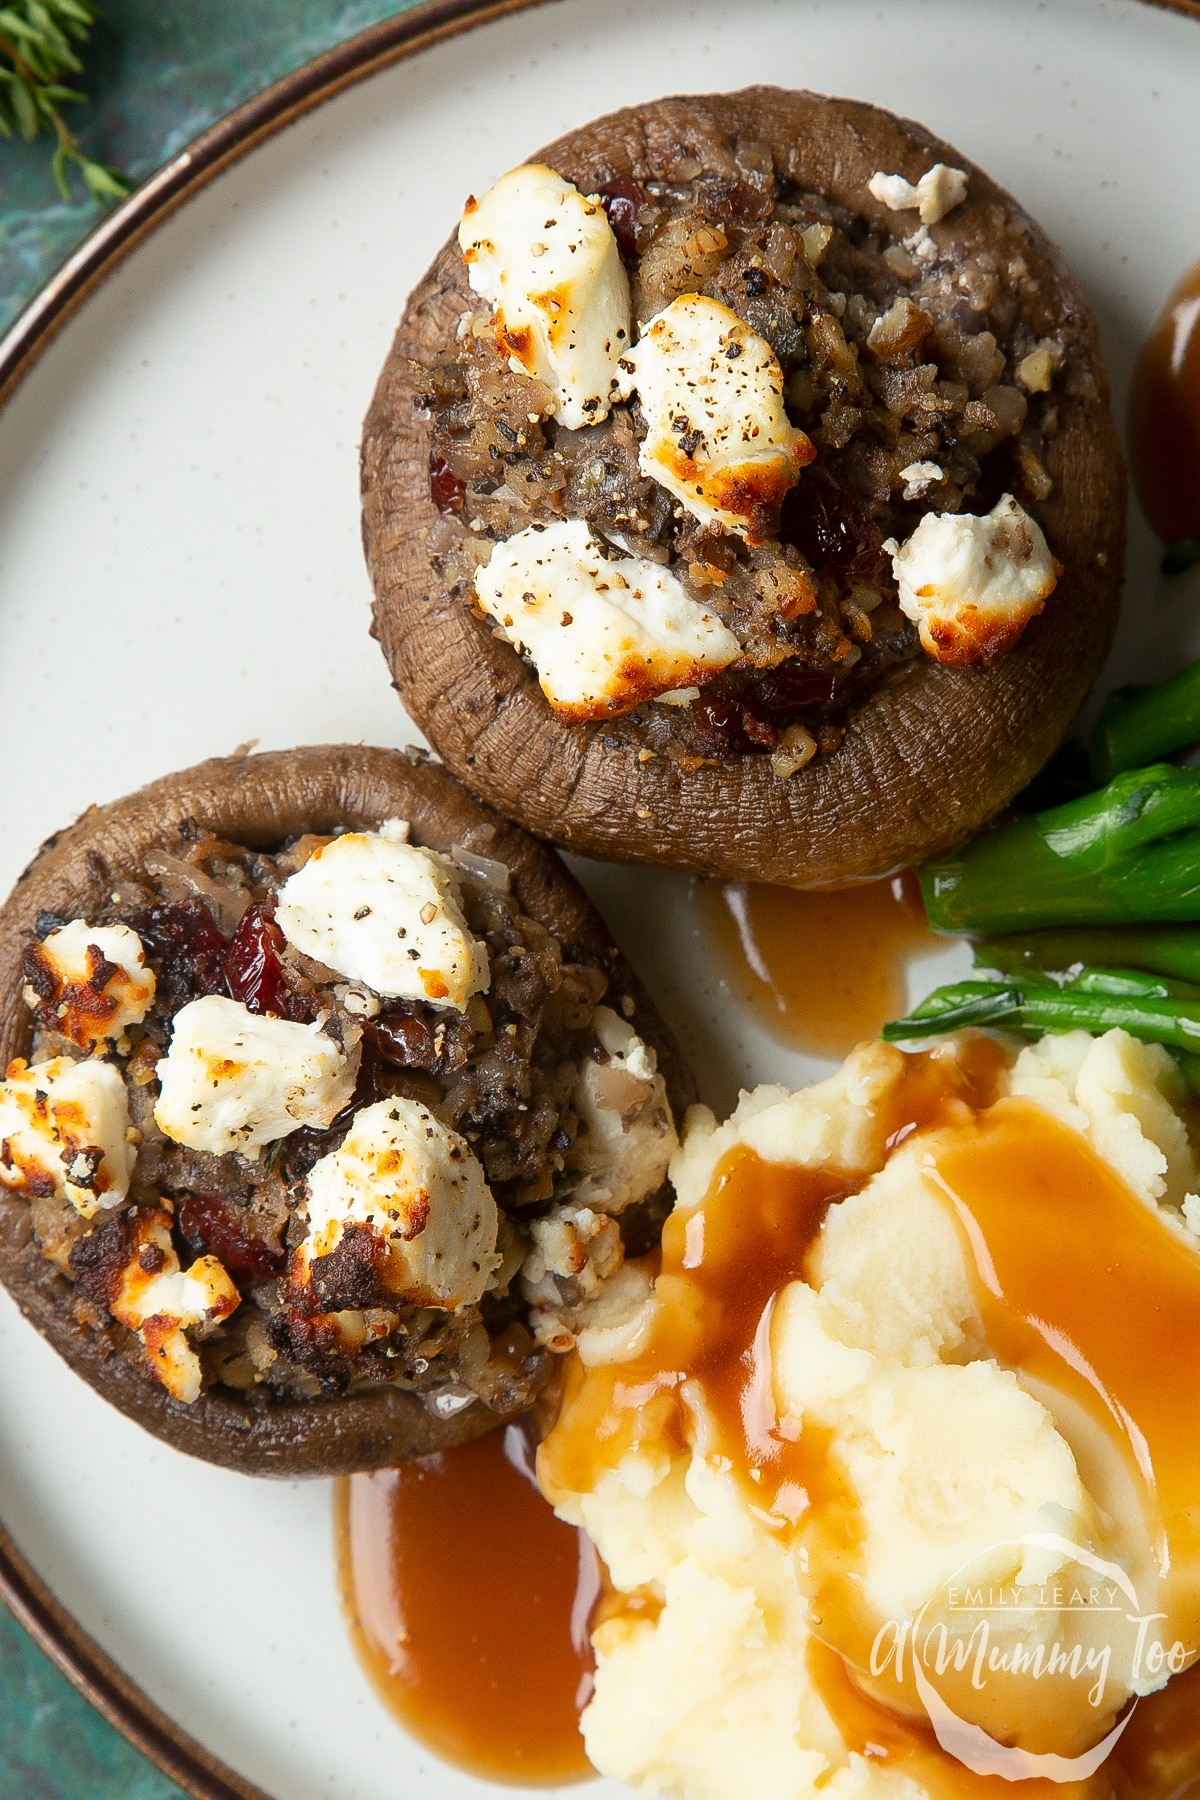 Overhead shot of crispy stuffed mushrooms topped with goats cheese and mashed potato on the side served on a white plate with a mummy too logo in the lower-right corner